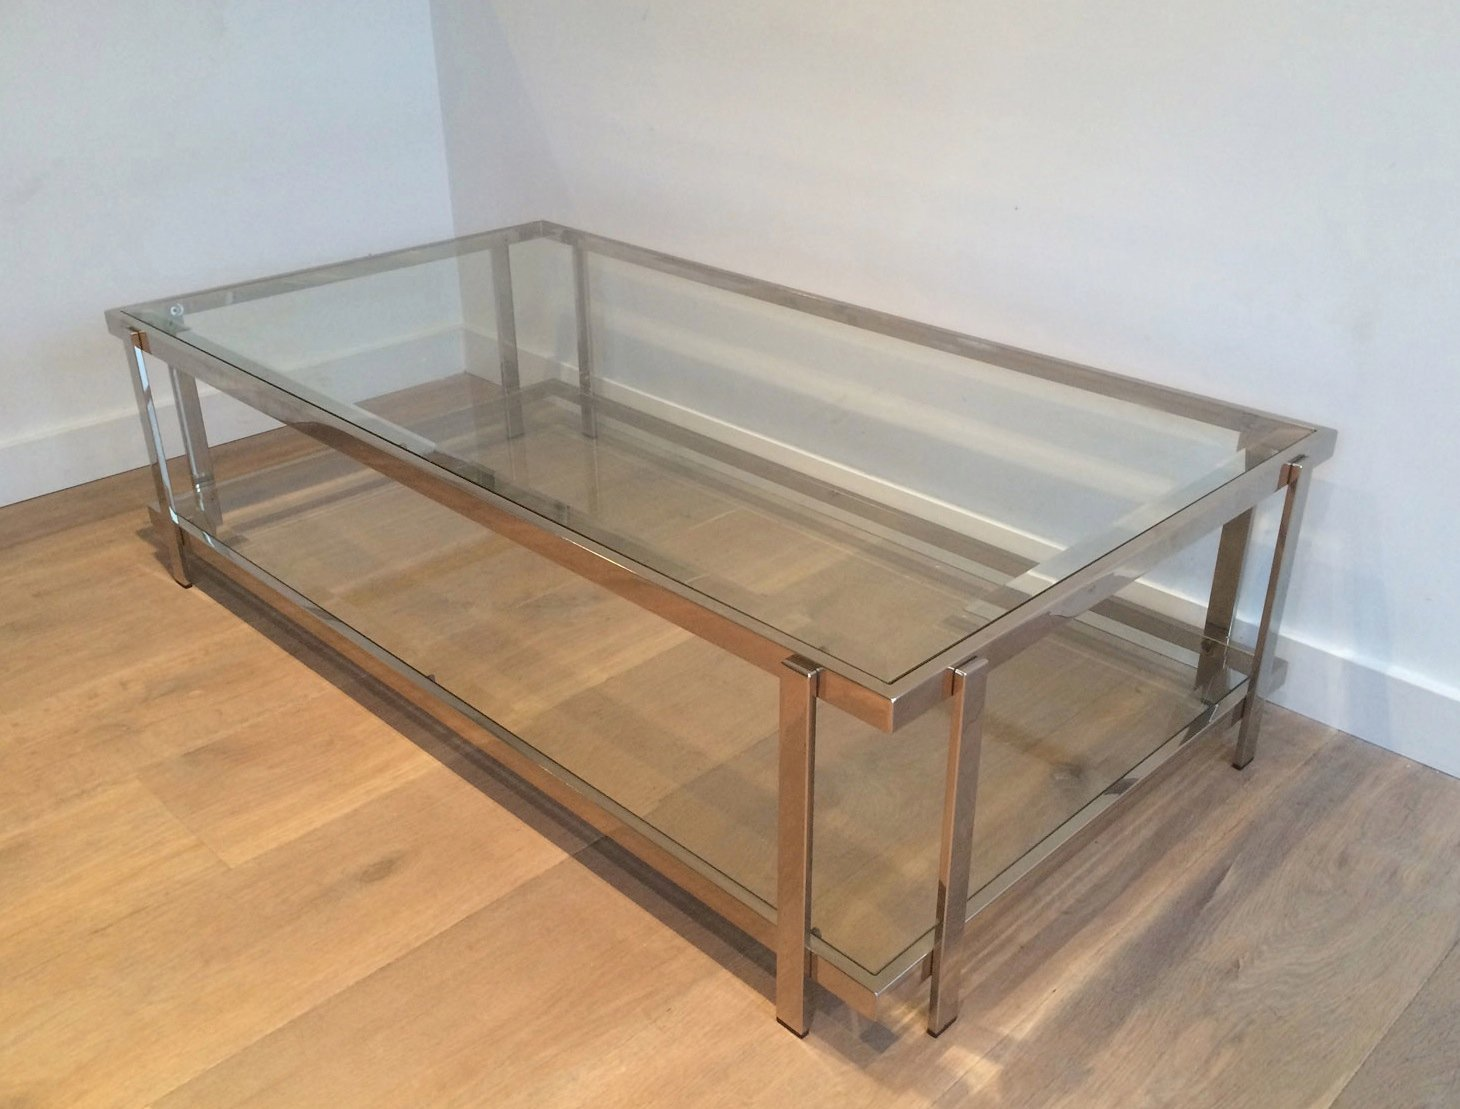 Vintage Chrome And Glass Coffee Table 1970s For Sale At Pamono